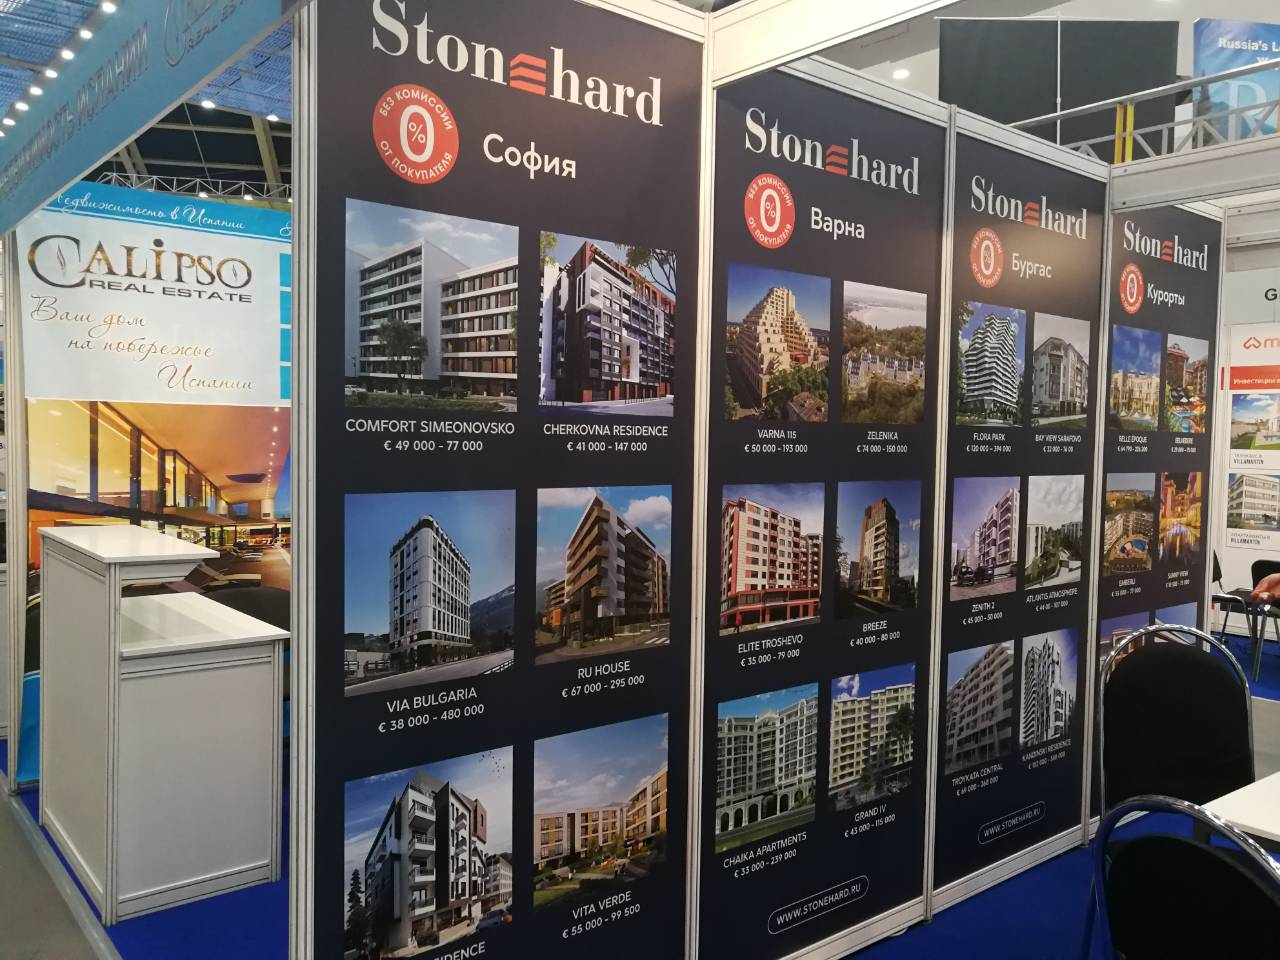 Stonehard's managing director attends the 30th Moscow International Property Show2 - Stonehard